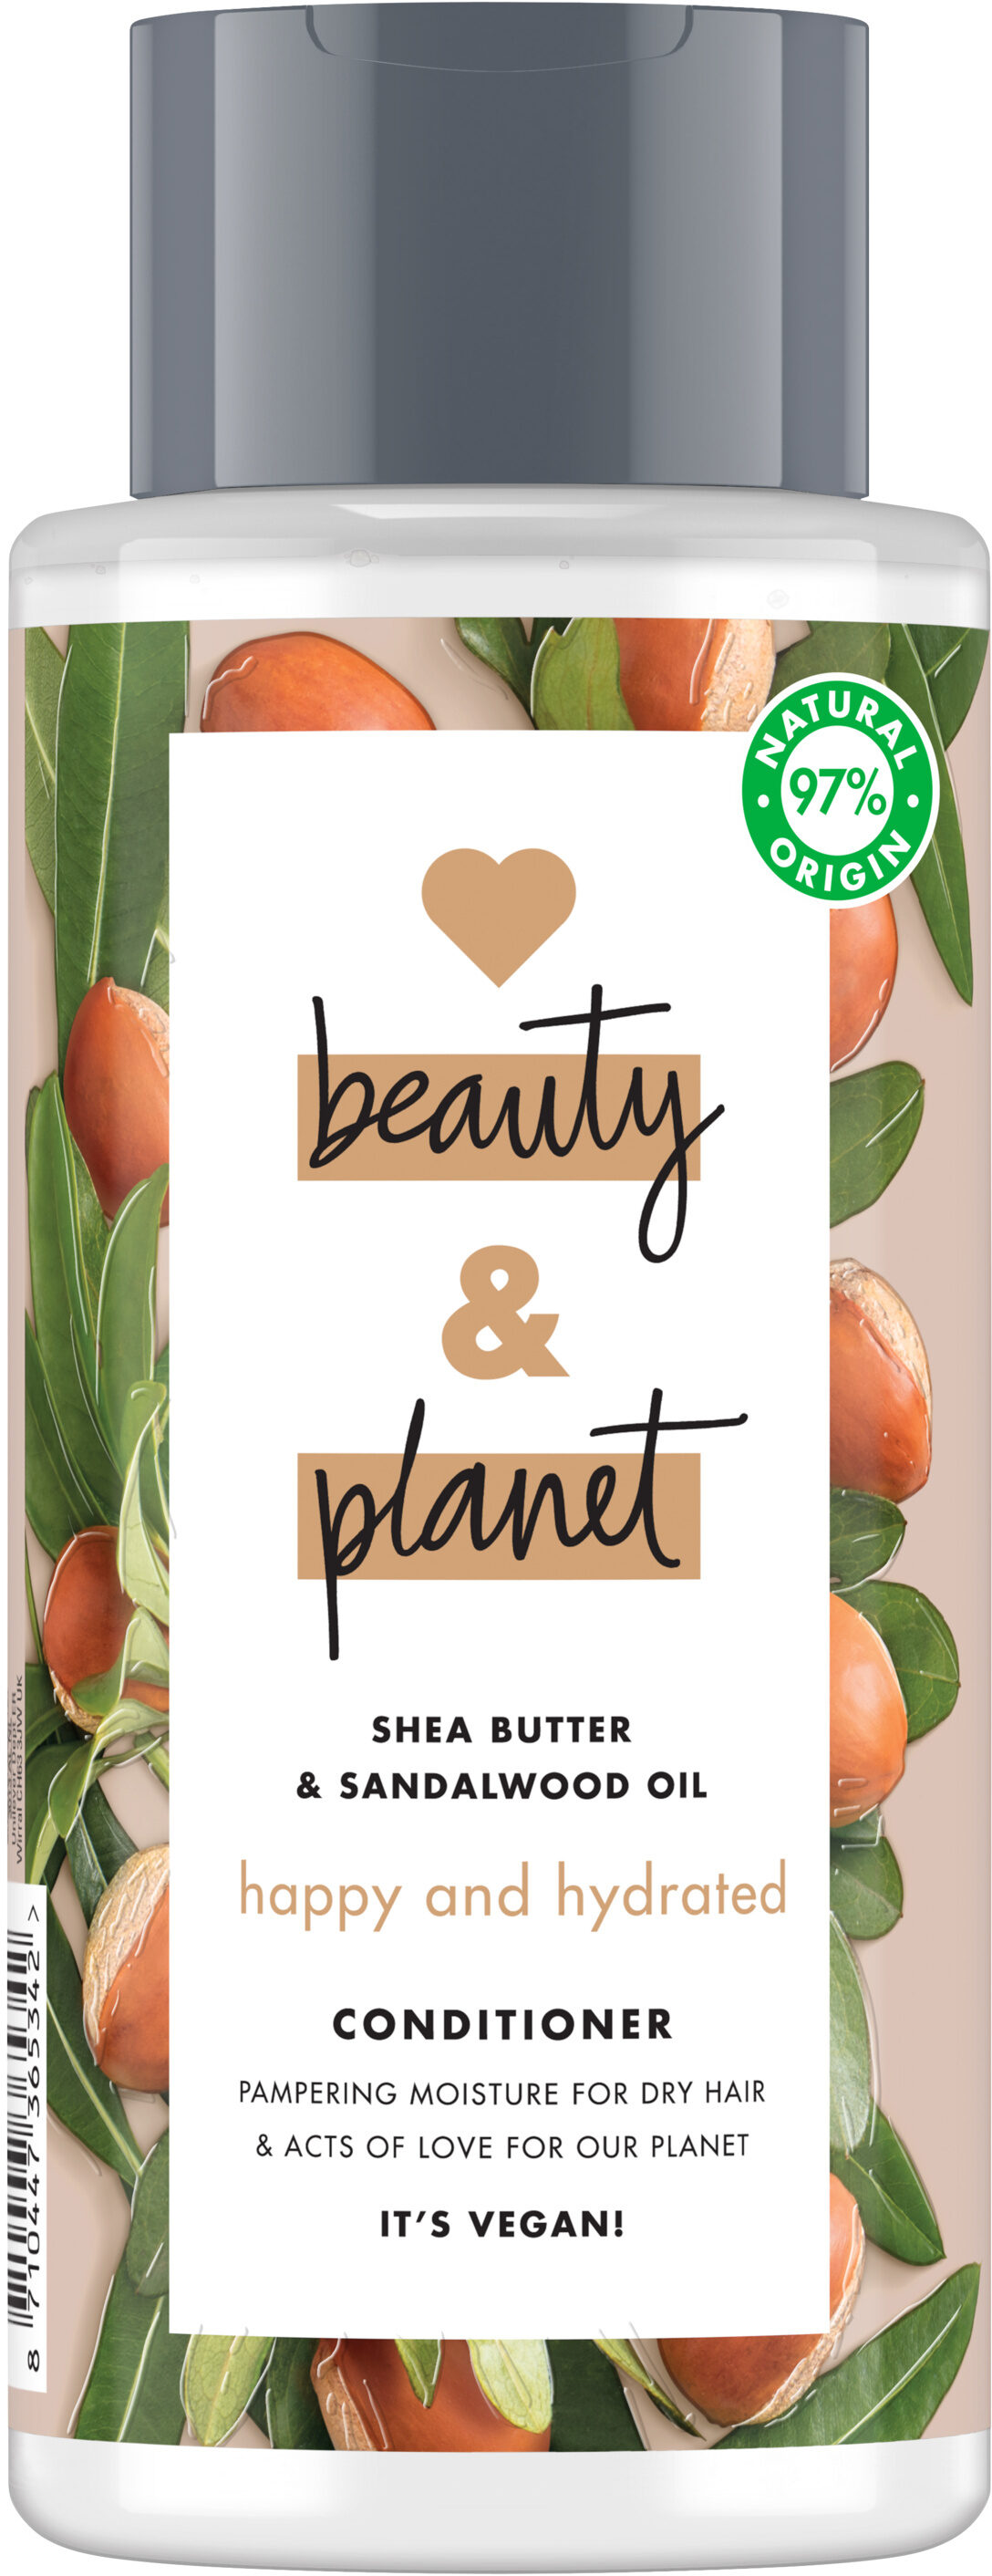 Love Beauty And Planet Après-Shampooing Hydratation Radieuse - Product - fr